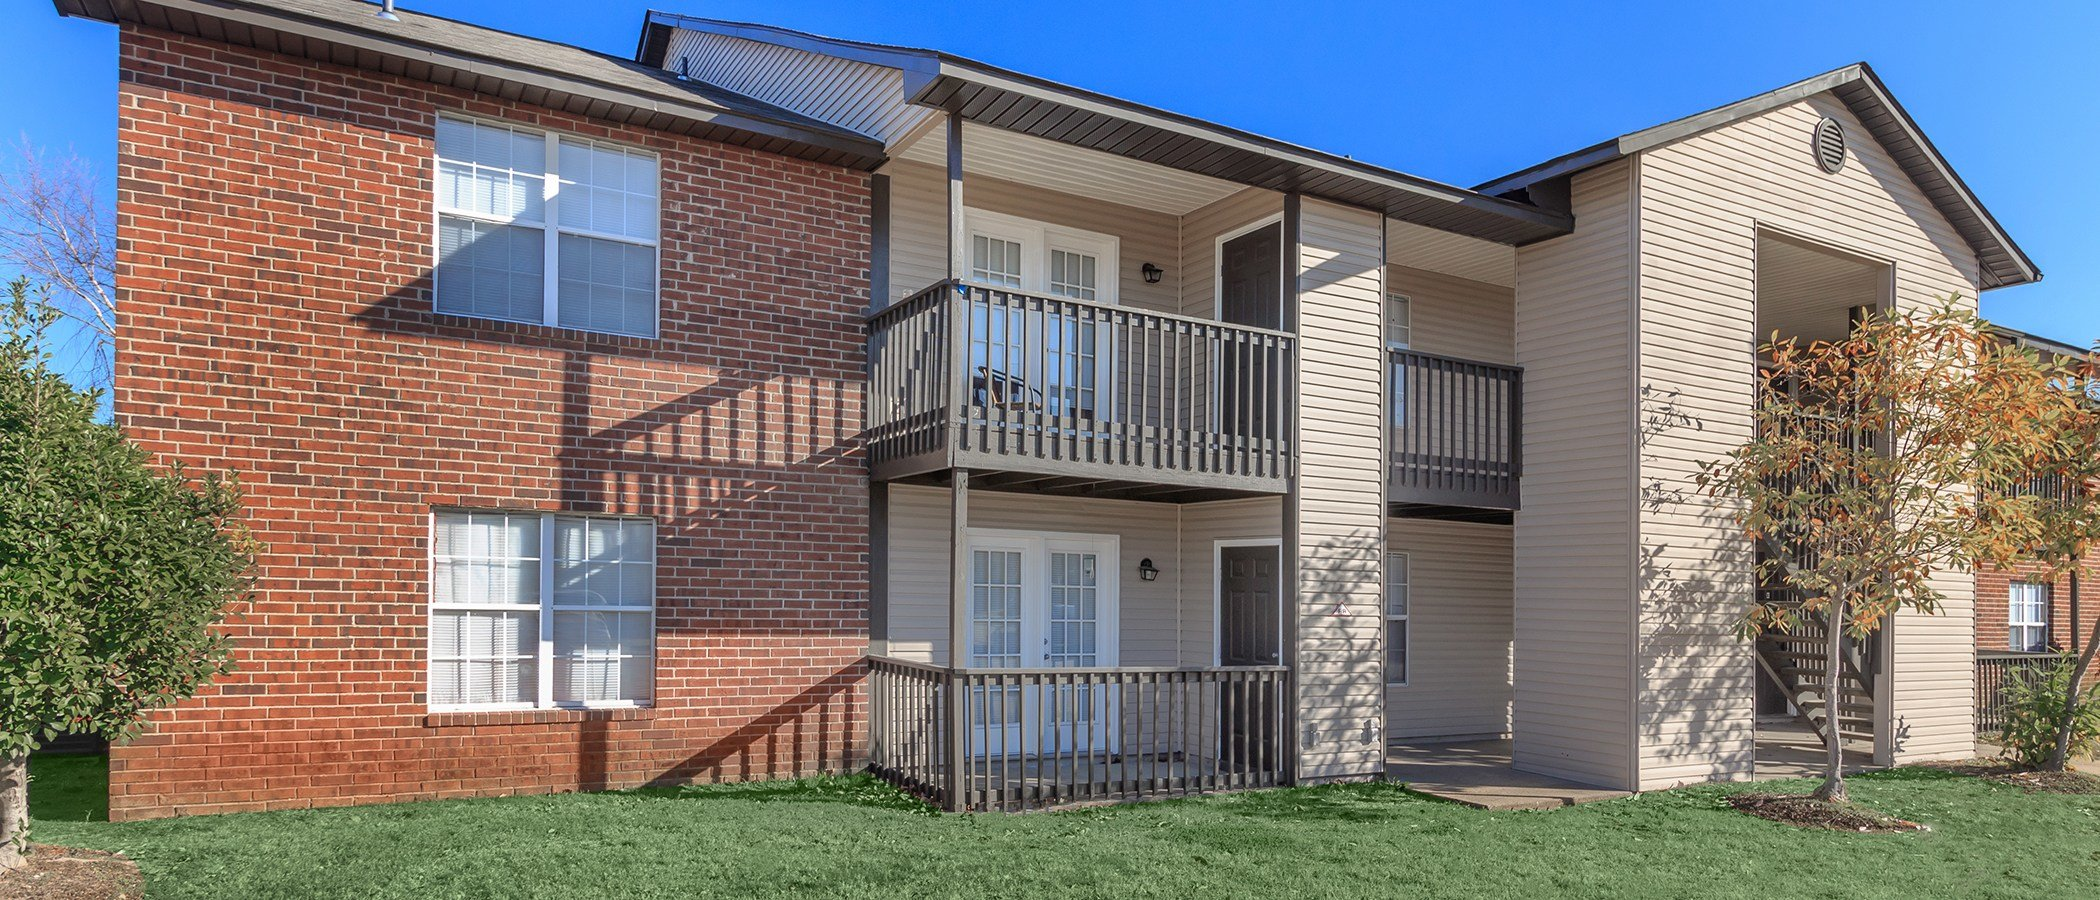 Best 1 Bedroom Apartments In Starkville Ms Middle Creek With Pictures